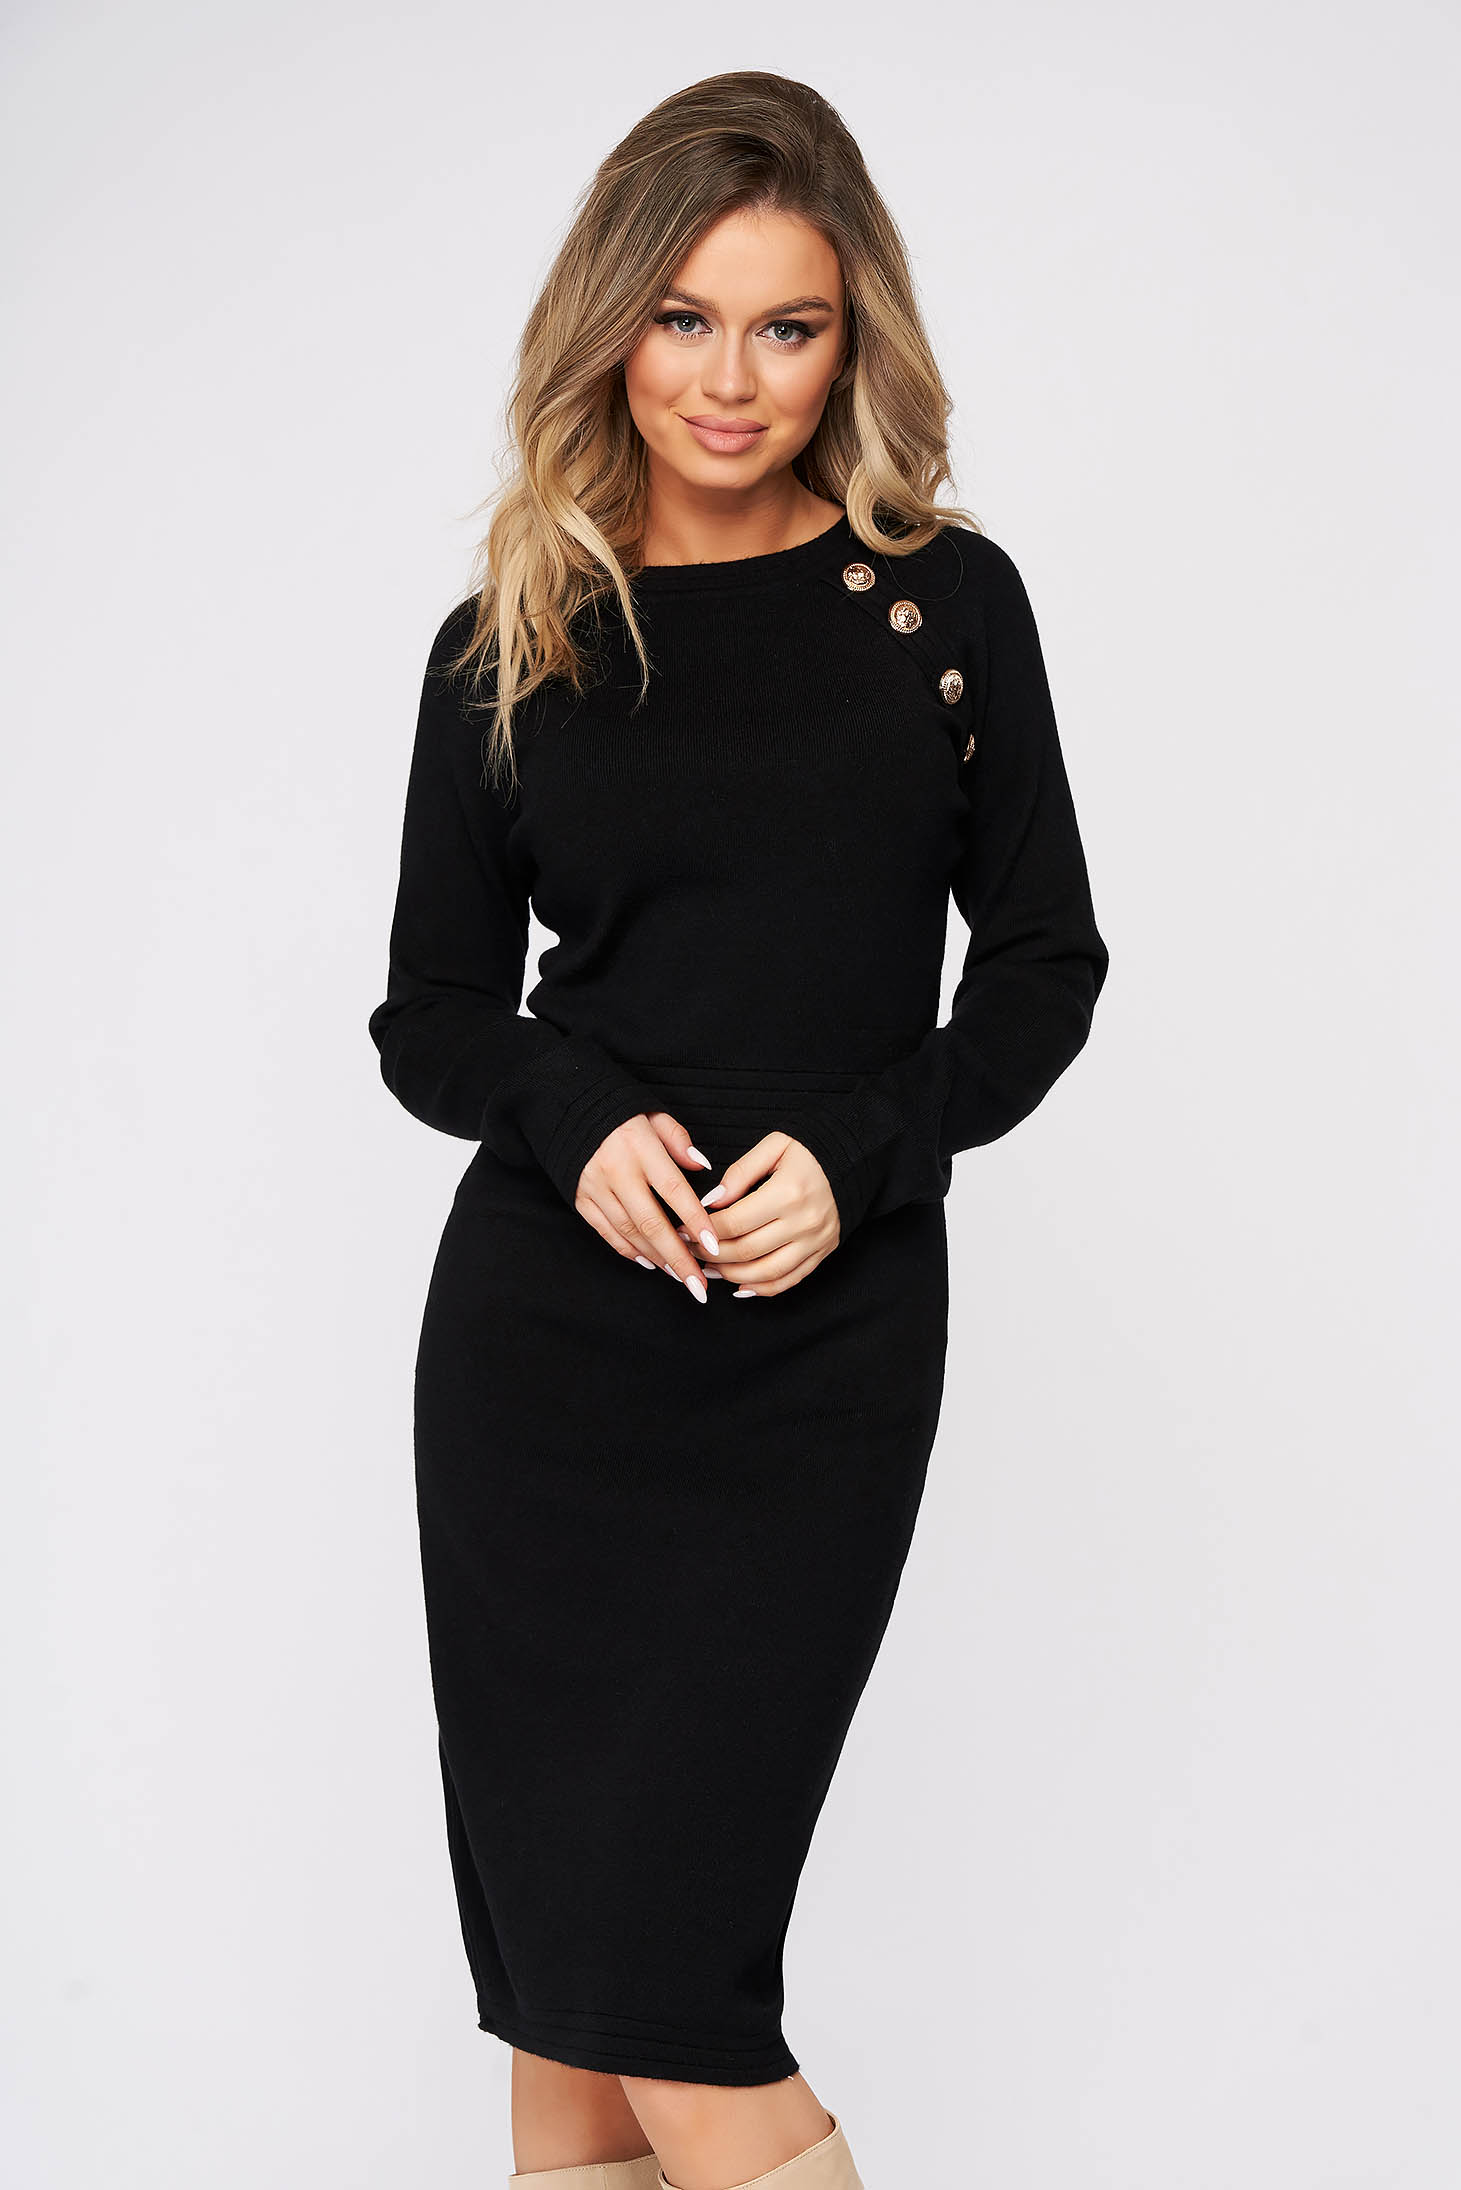 Black dress midi pencil knitted fabric with button accessories